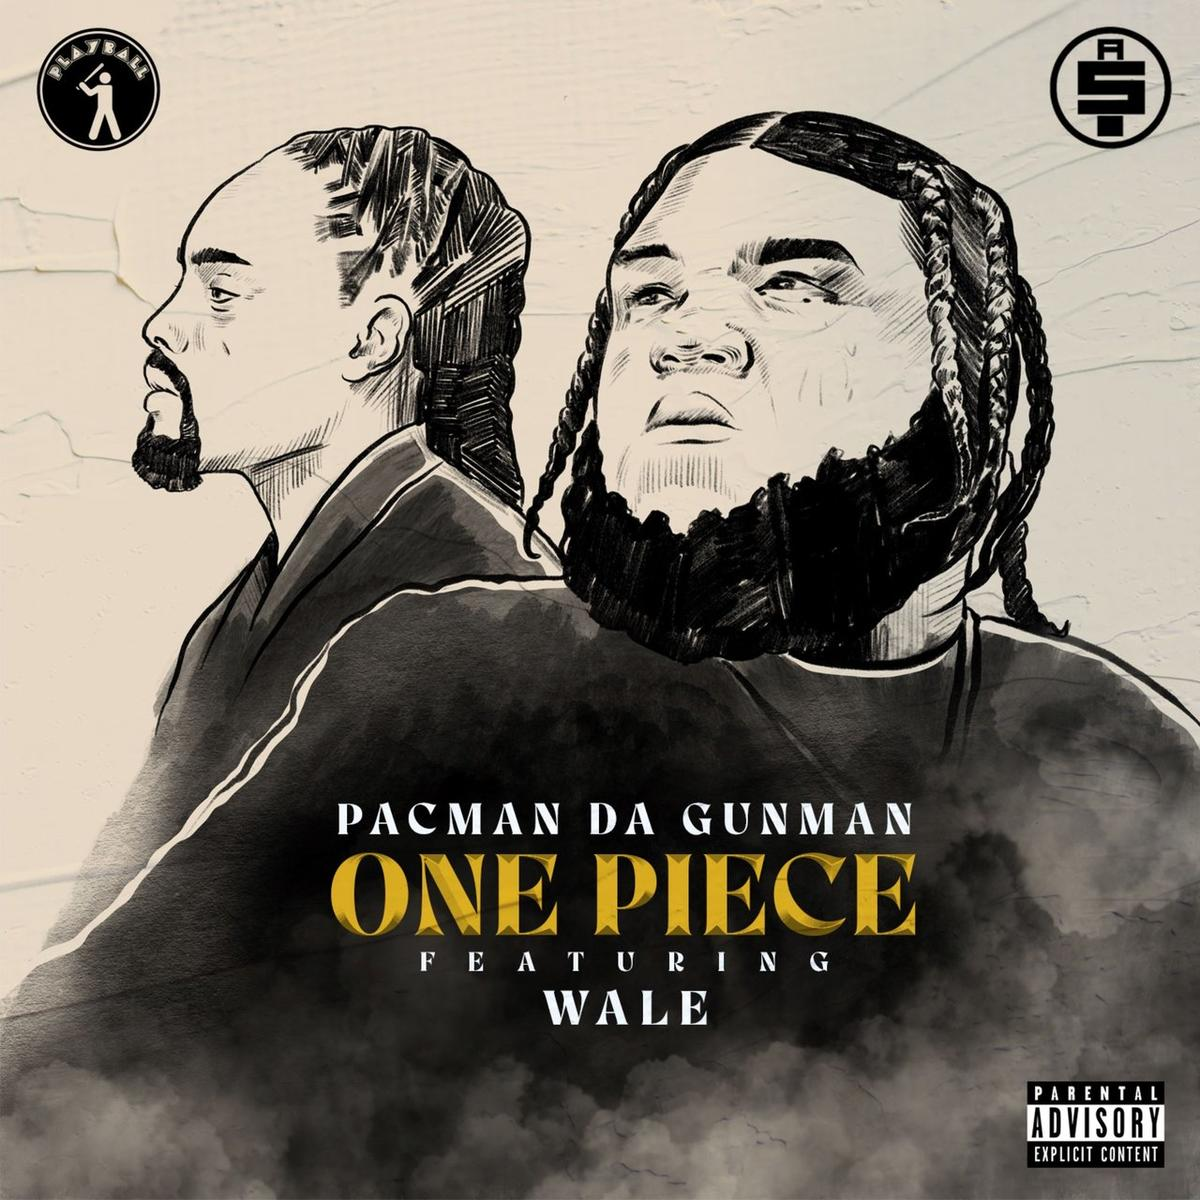 Pacman da Gunman/All Money In No Money Out/Playball Music/Opposition